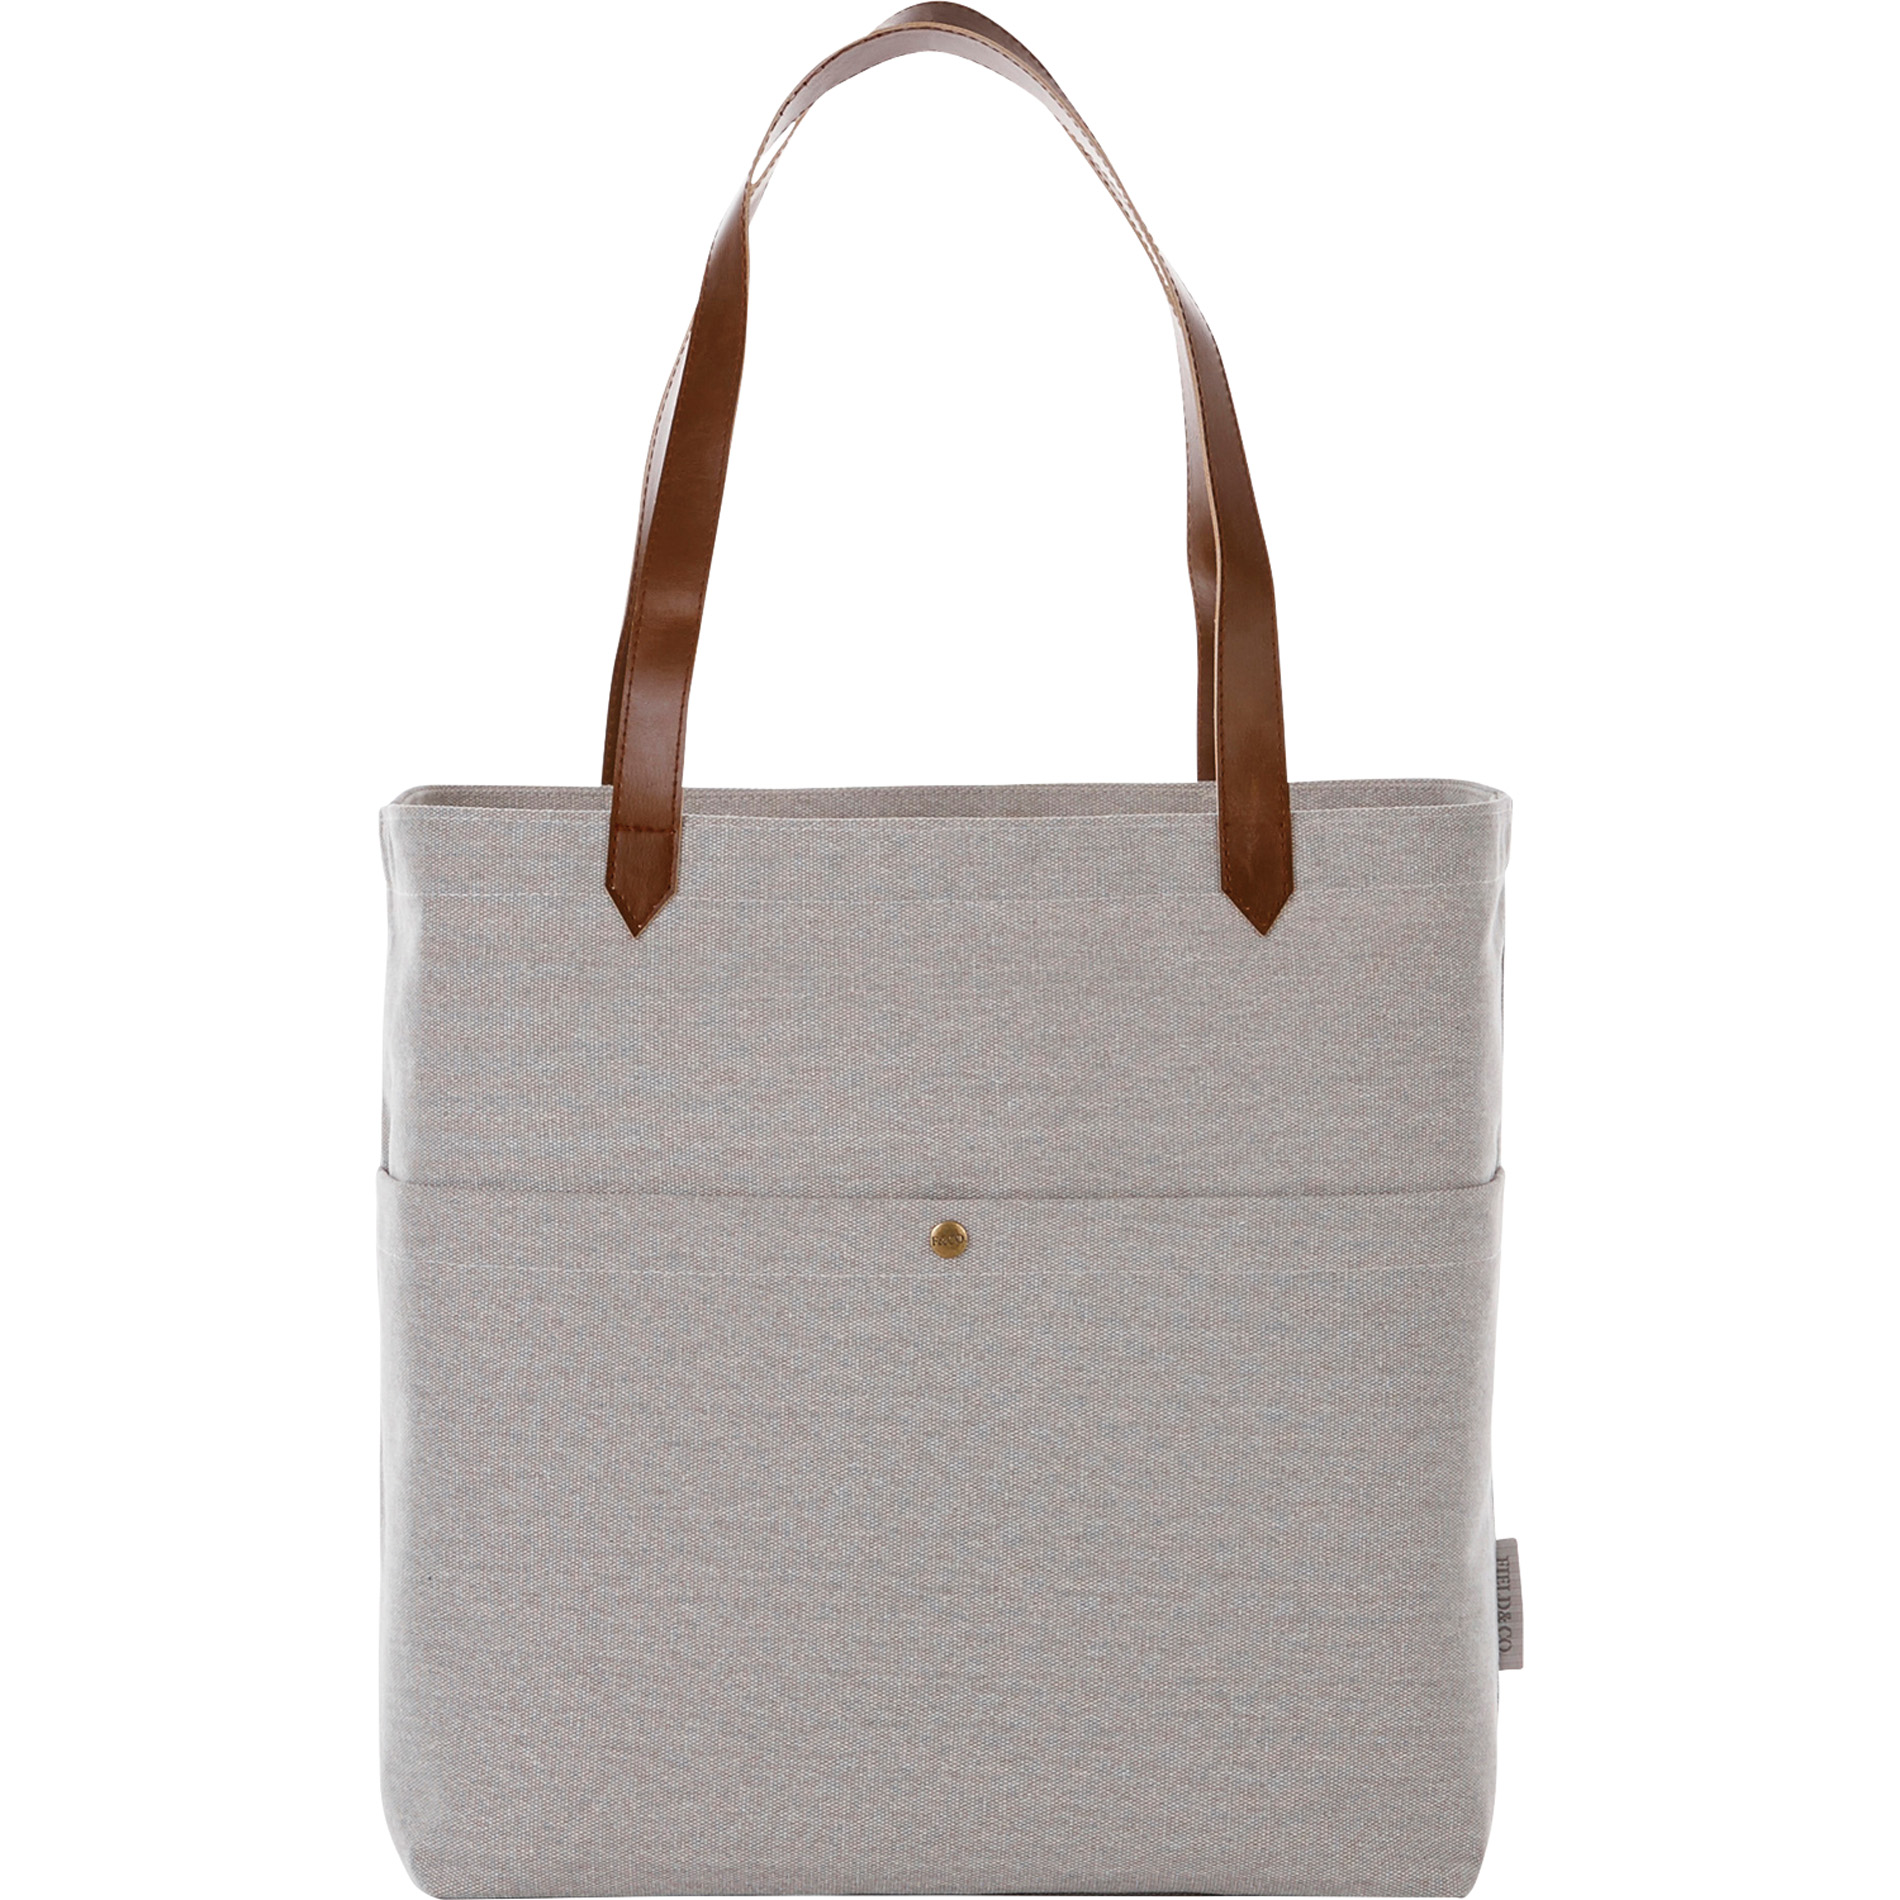 Field & Co. 7950-19 - 16 oz. Cotton Canvas Book Tote